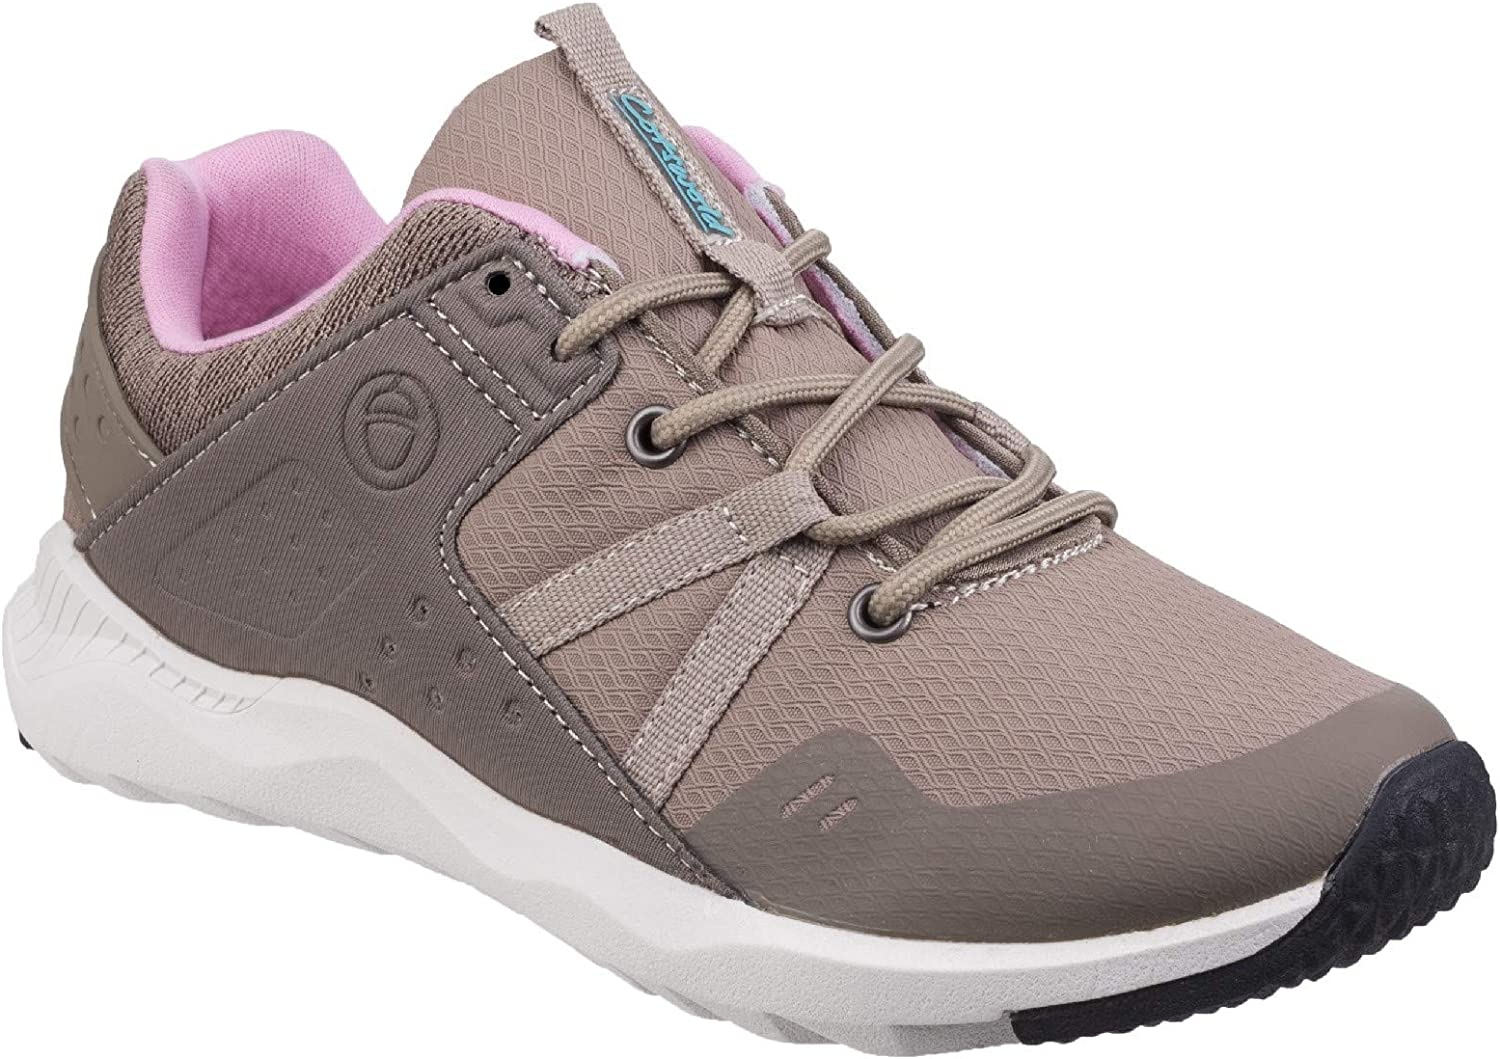 Cotswold Womens Luckington Casual shoes Taupe Pink White Size UK 9 EU 42